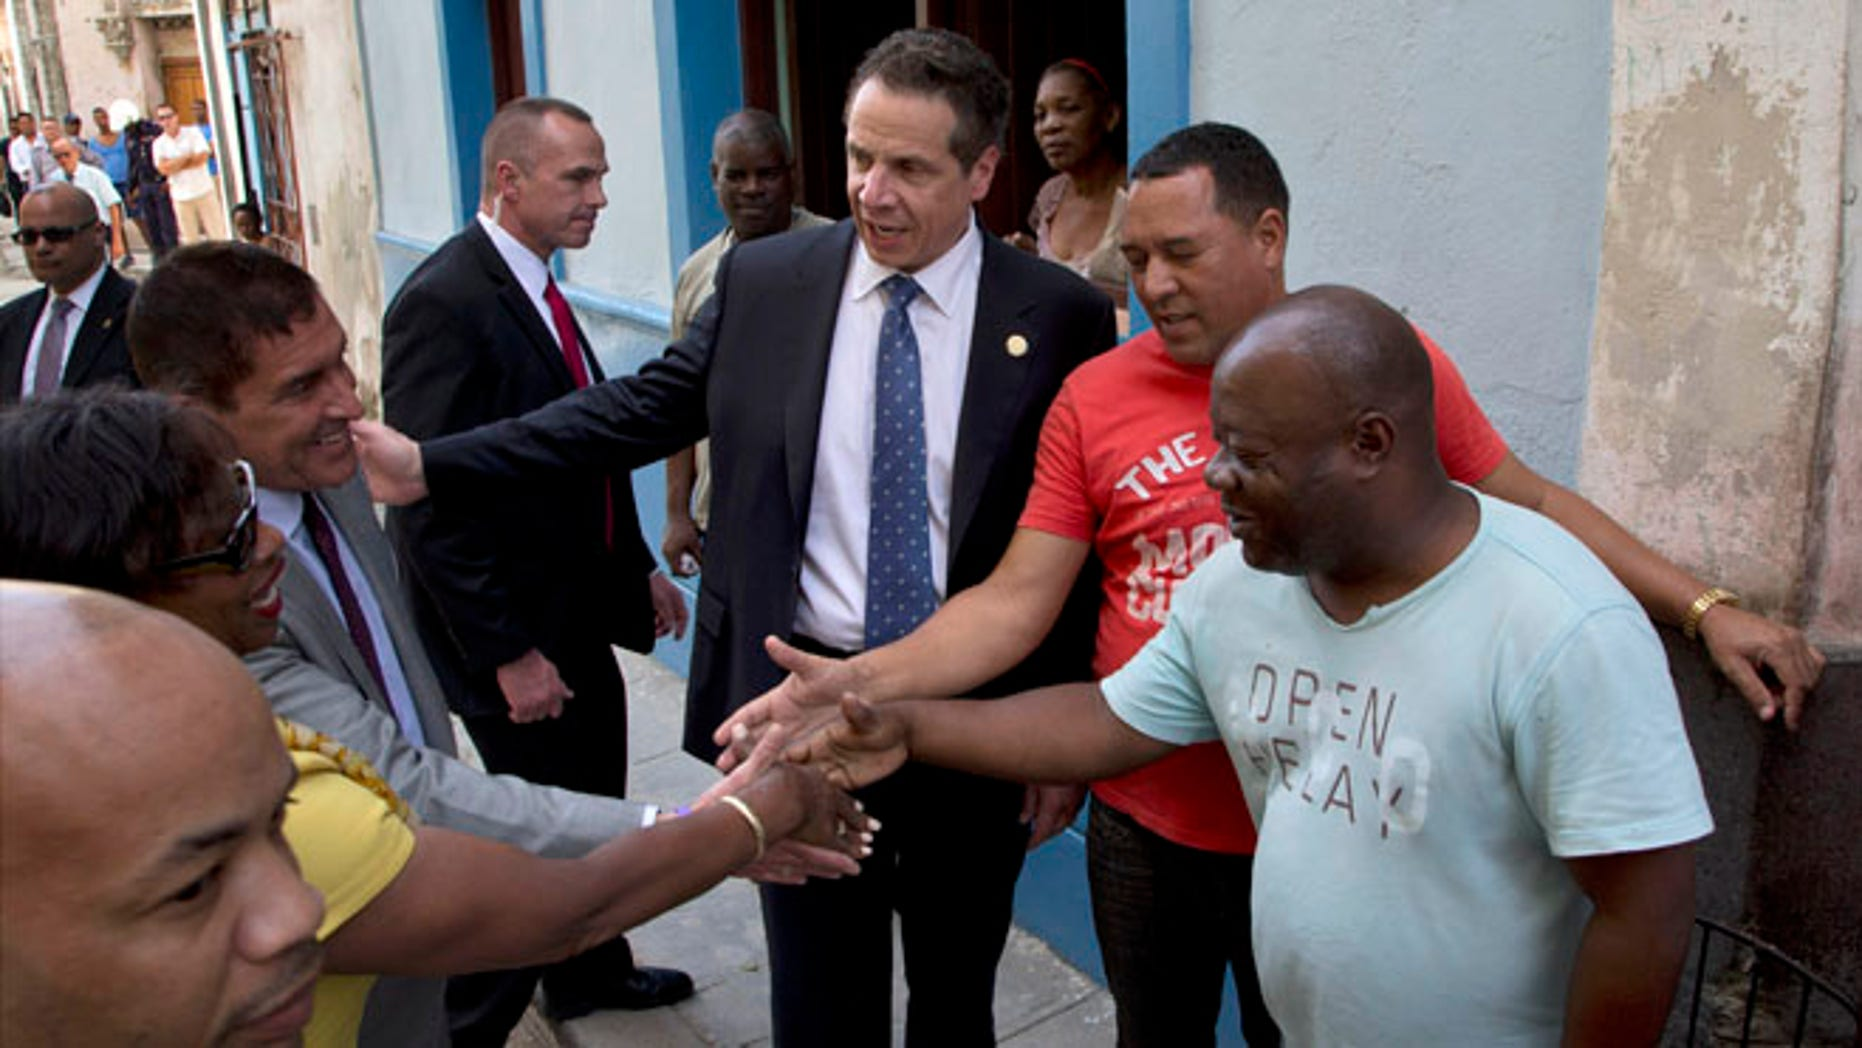 New York Governor Andrew Cuomo, center, greets people on a street  in old Havana, Cuba, Monday, April 20, 2015. The formal state visit, a trip that makes Cuomo the first American governor to visit the island since the recent thaw in relations with the communist nation, is meant to foster greater ties between New York and Cuba. (AP Photo/Ramon Espinosa)